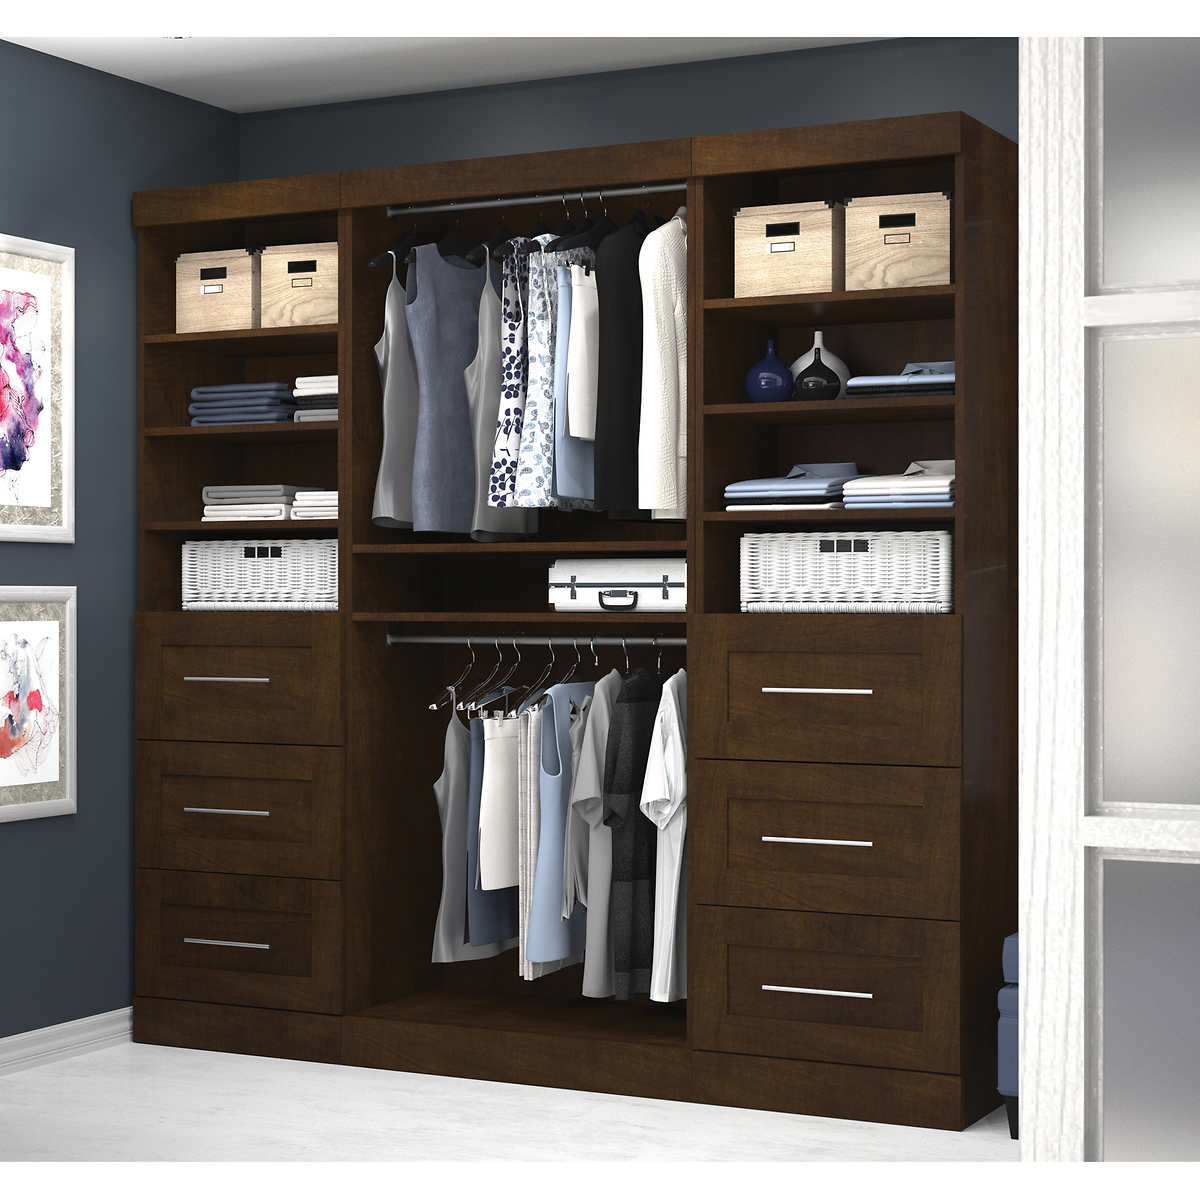 Boutique Stow Away Closet Kit - Storage Cabinets & Shelving Units Costco